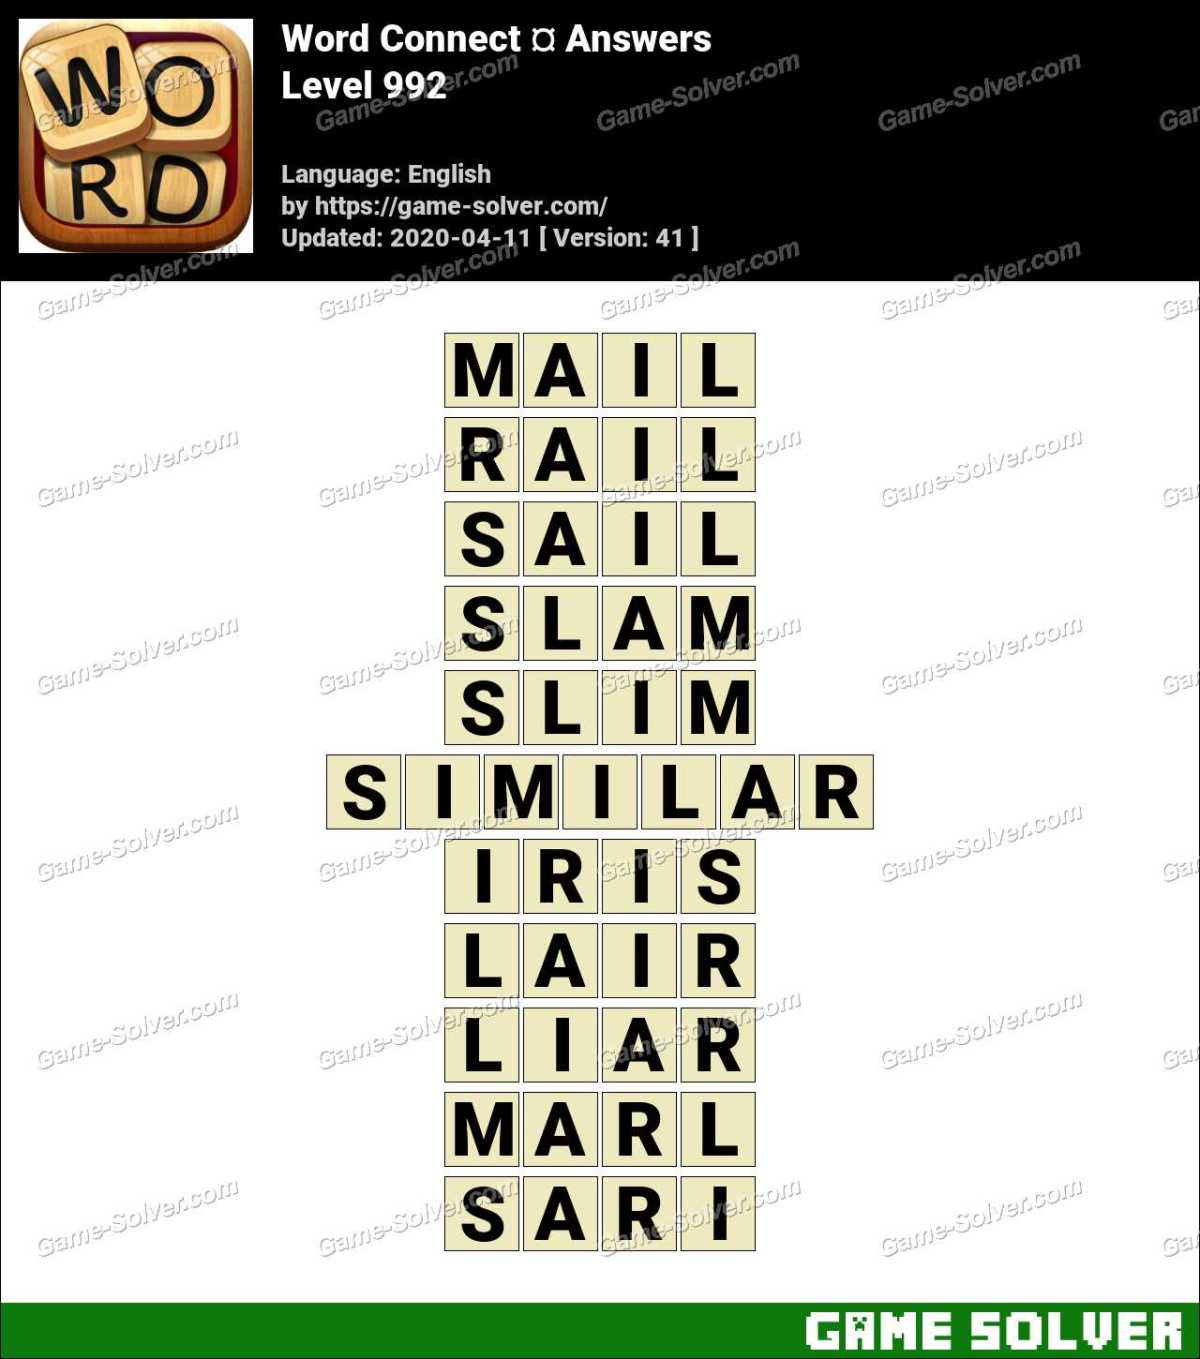 Word Connect Level 992 Answers